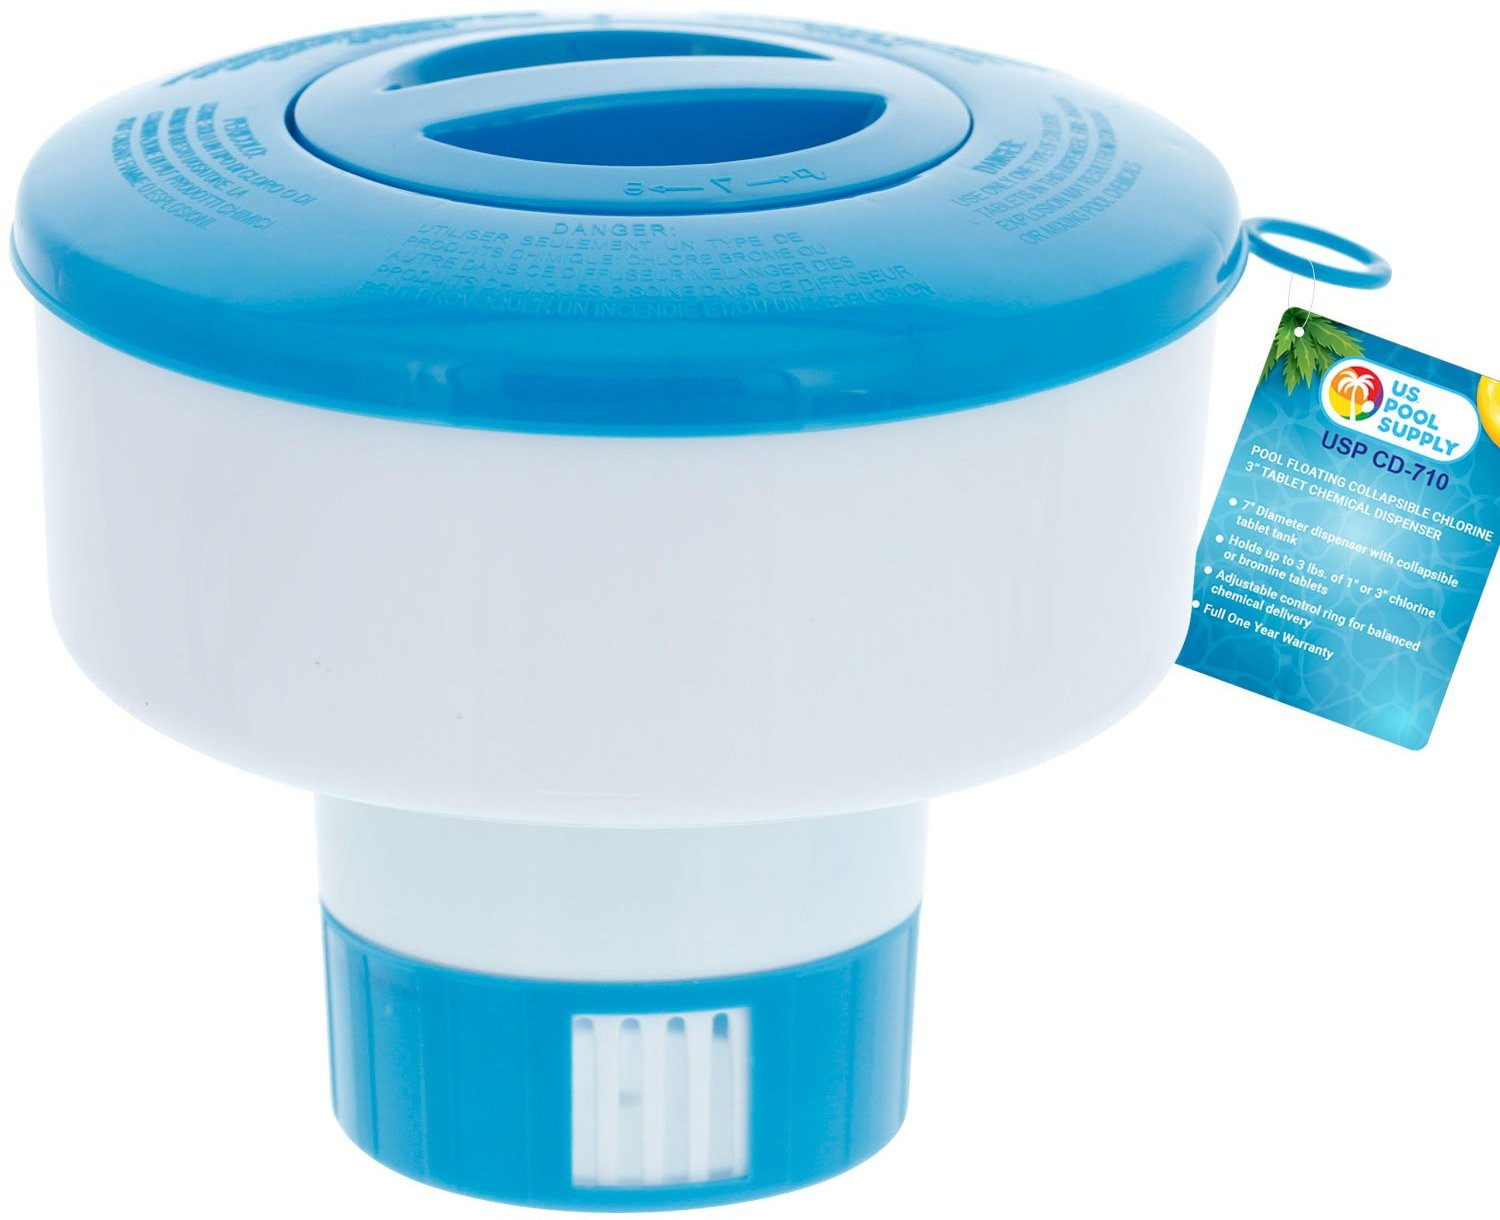 u.s. pool supply pool chlorine dispenser